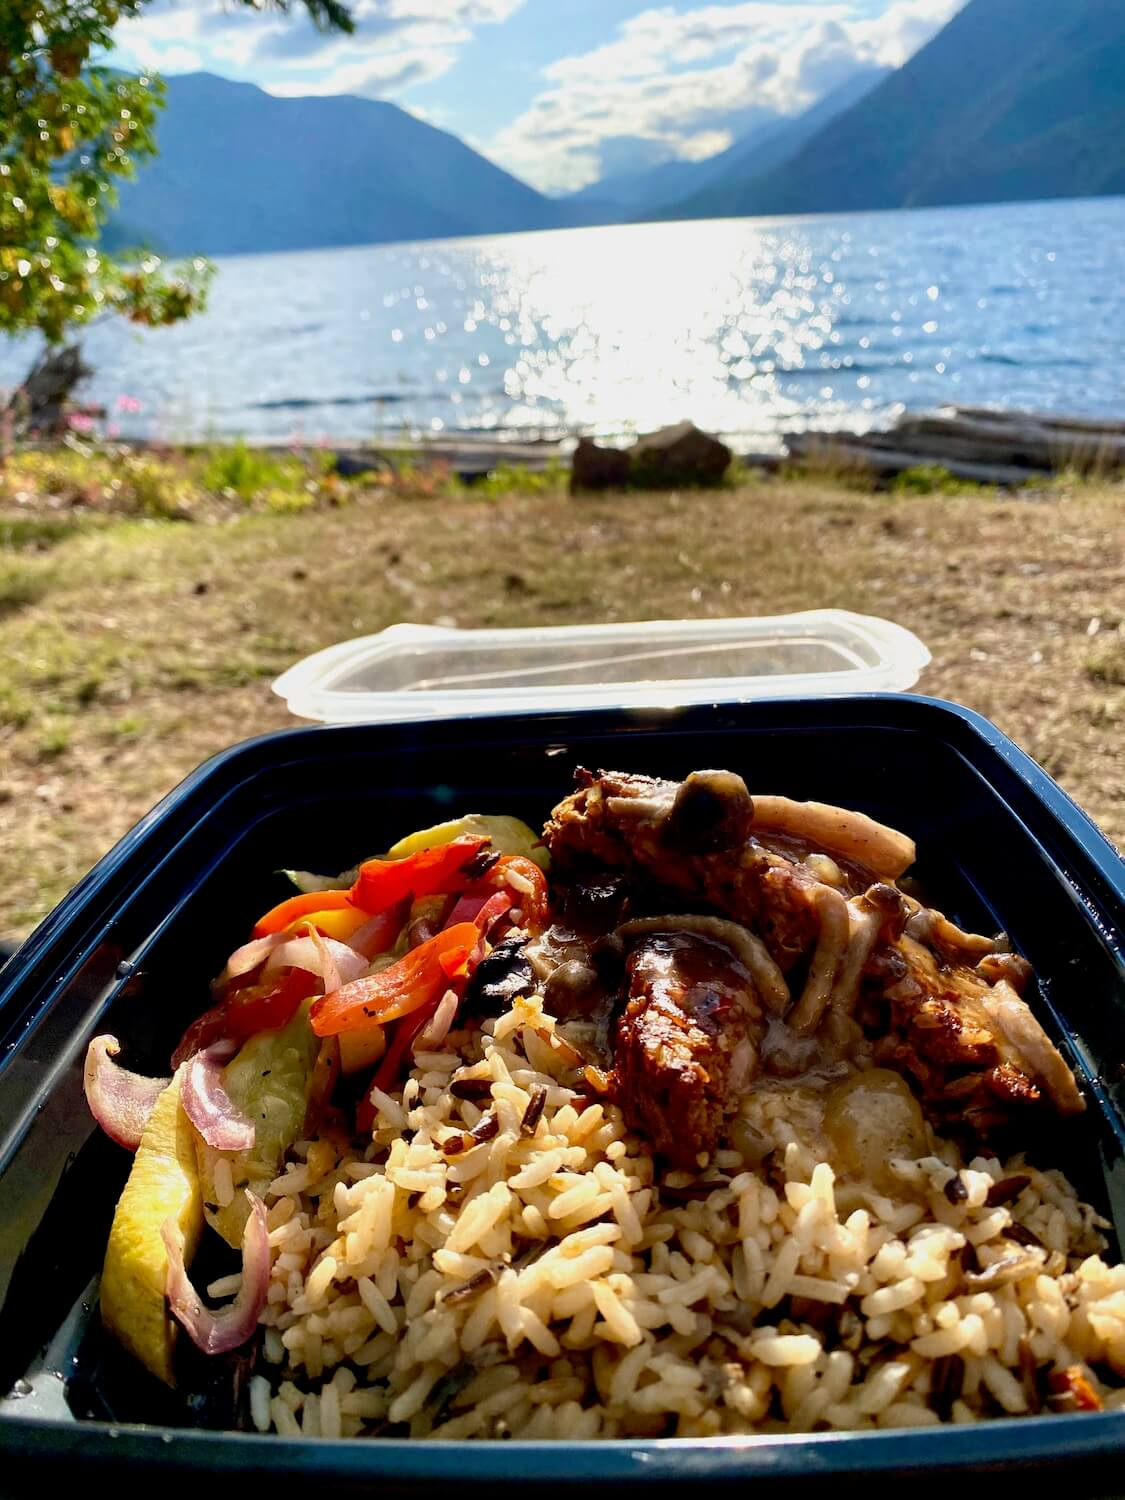 Take out from Lake Crescent Lodge looks like this black plastic container with rice, vegetables and vegan meat loaf. This is held in from of the lake with the sun glowing in the out of focus distance.